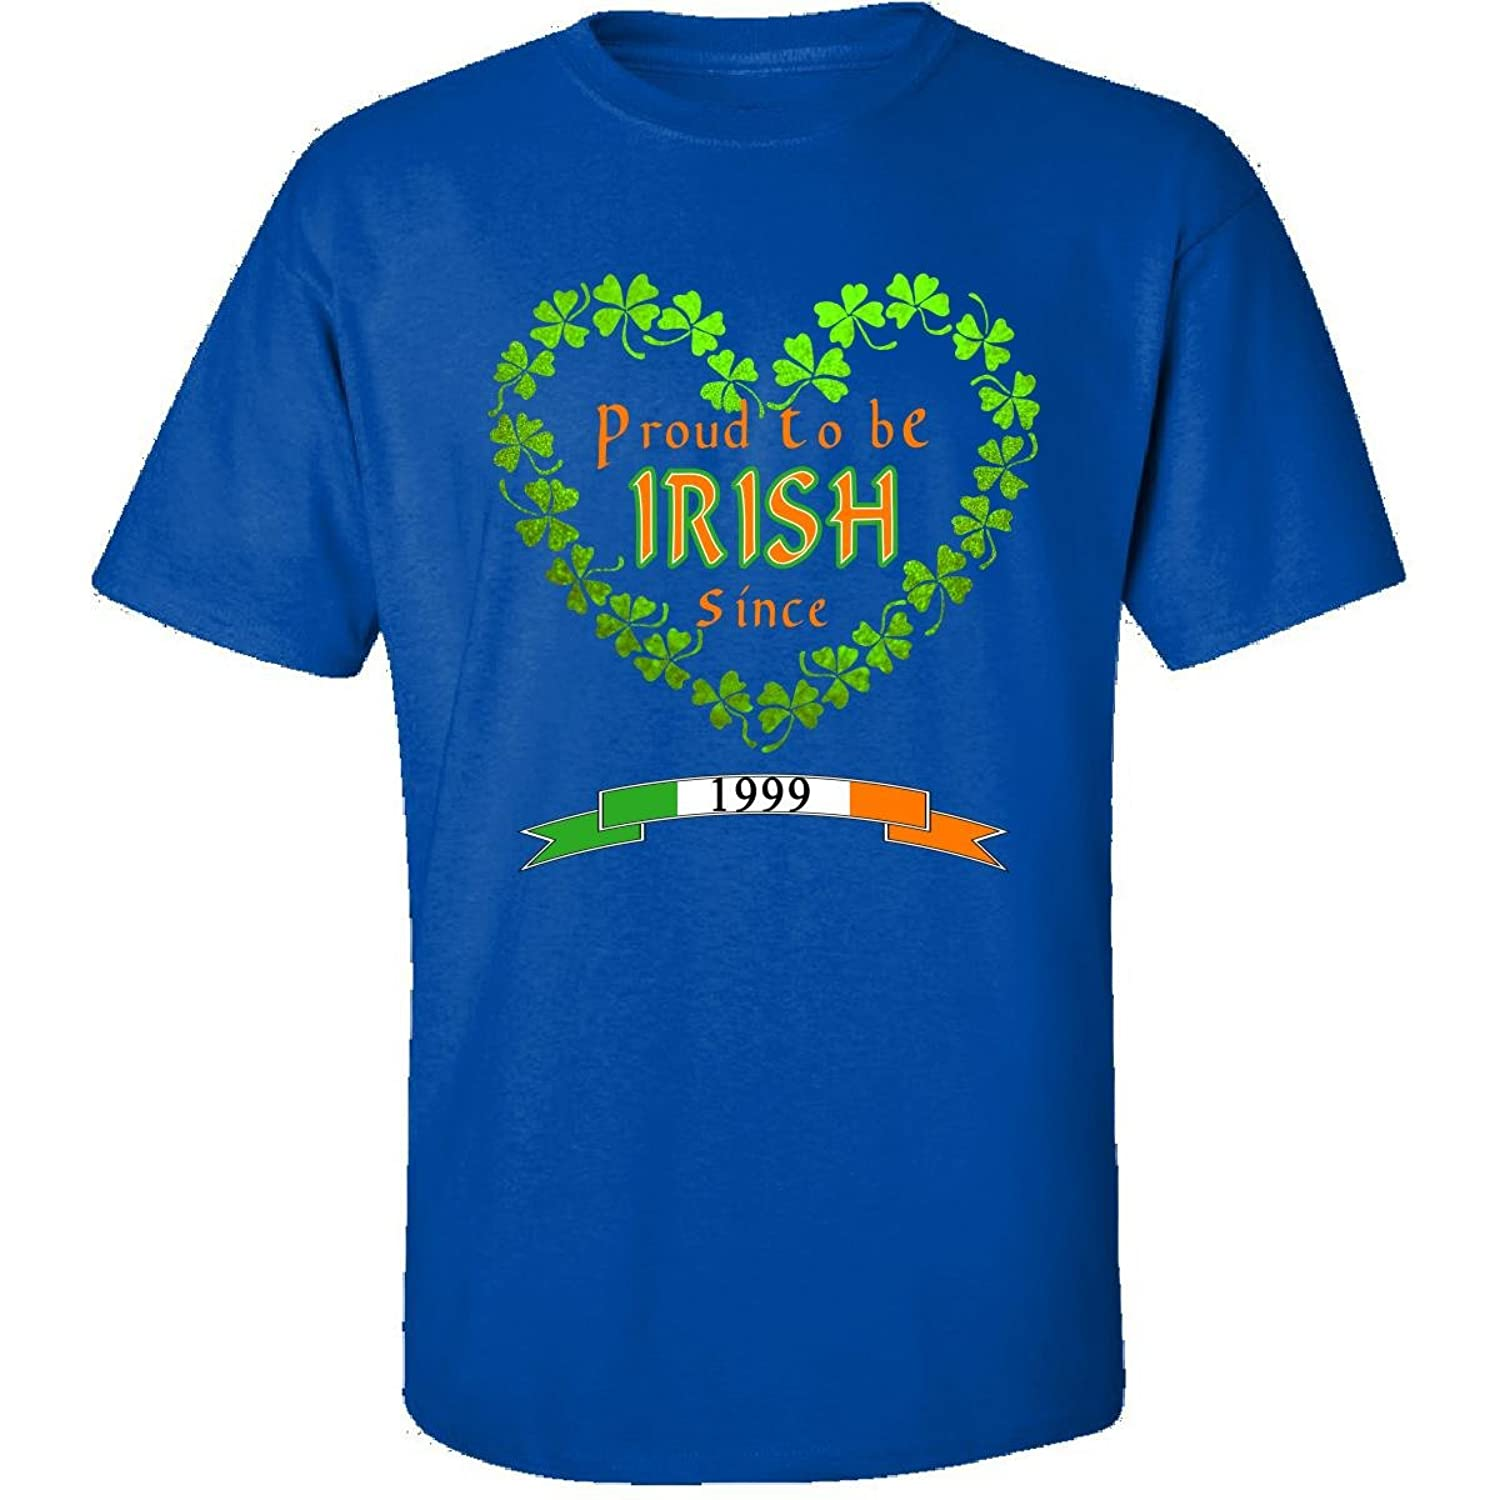 Proud To Be Irish Since 1999 Cool Birthday Gift For Friends - Adult Shirt